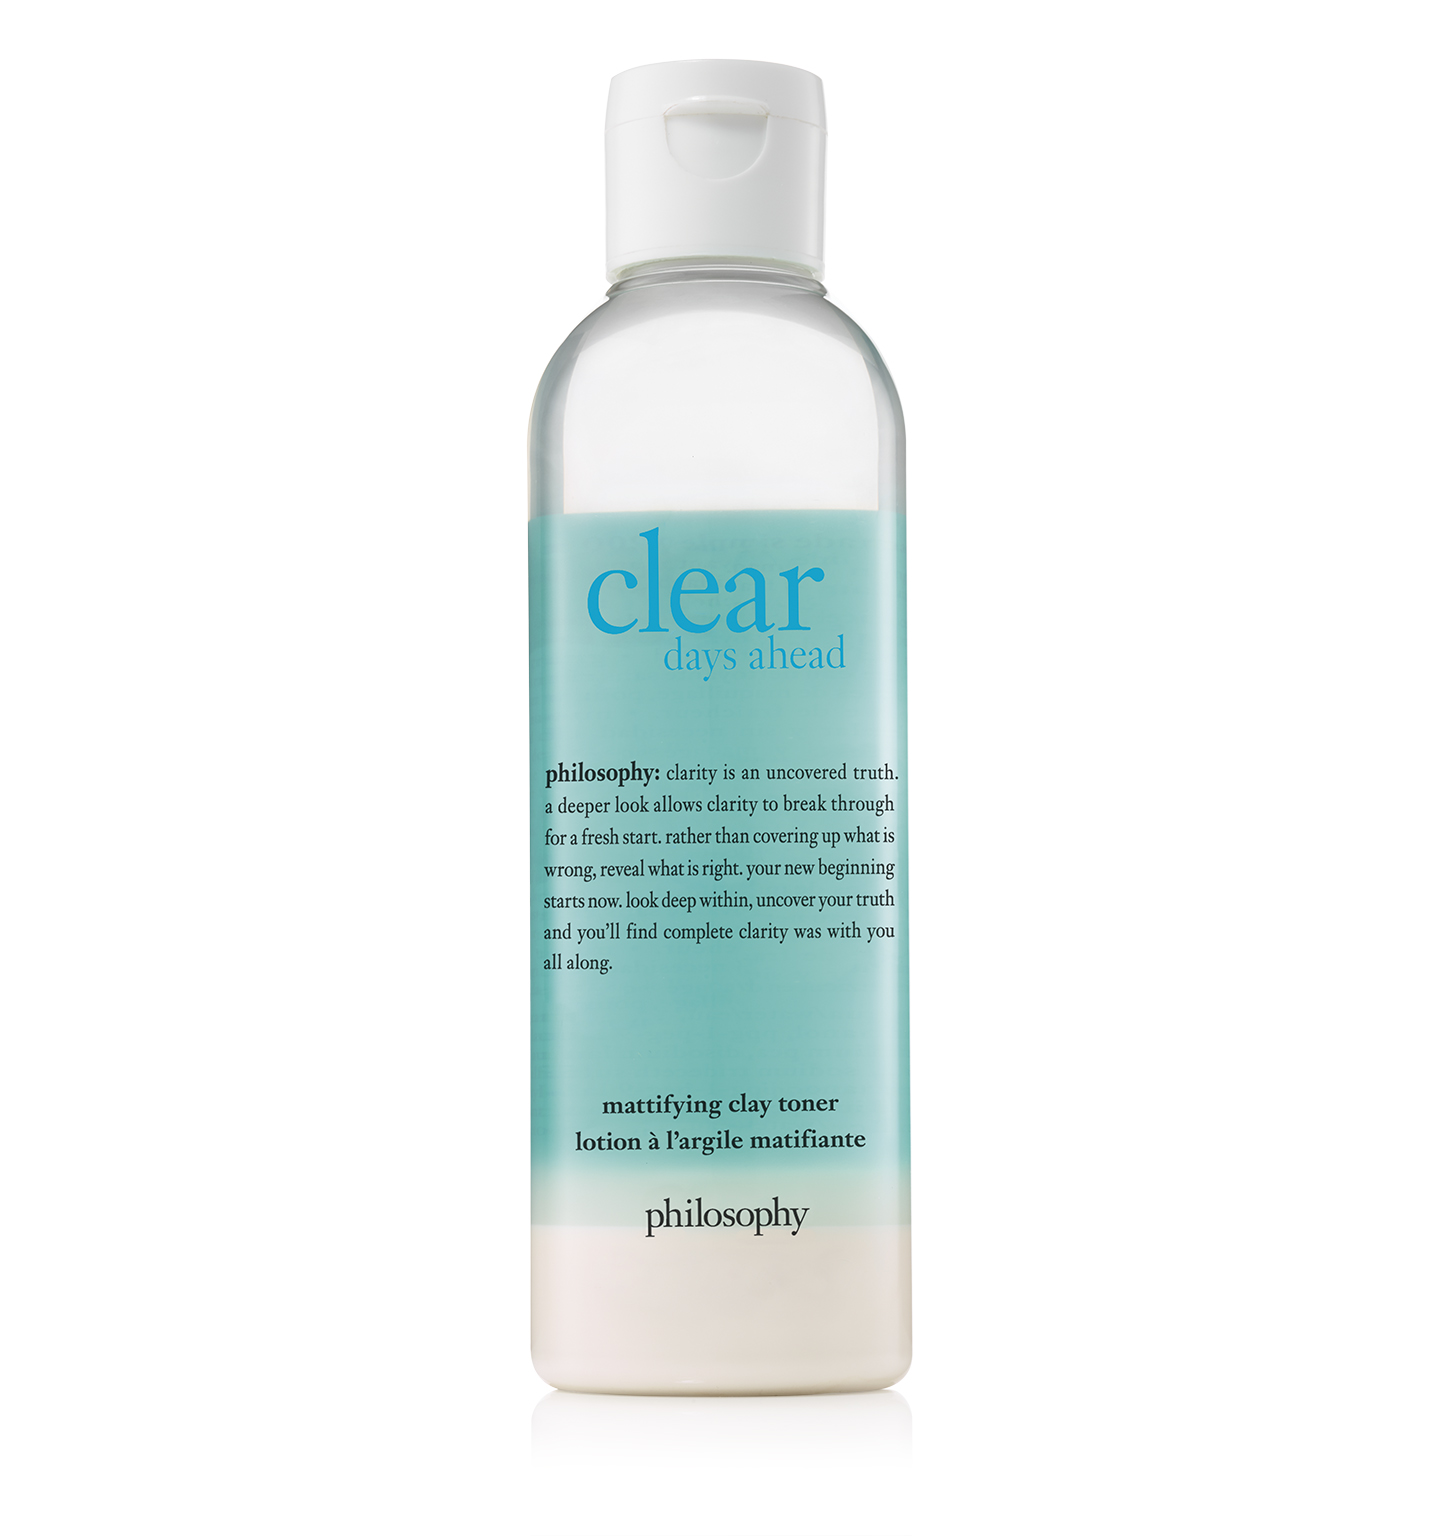 philosophy, clear days ahead facial toner